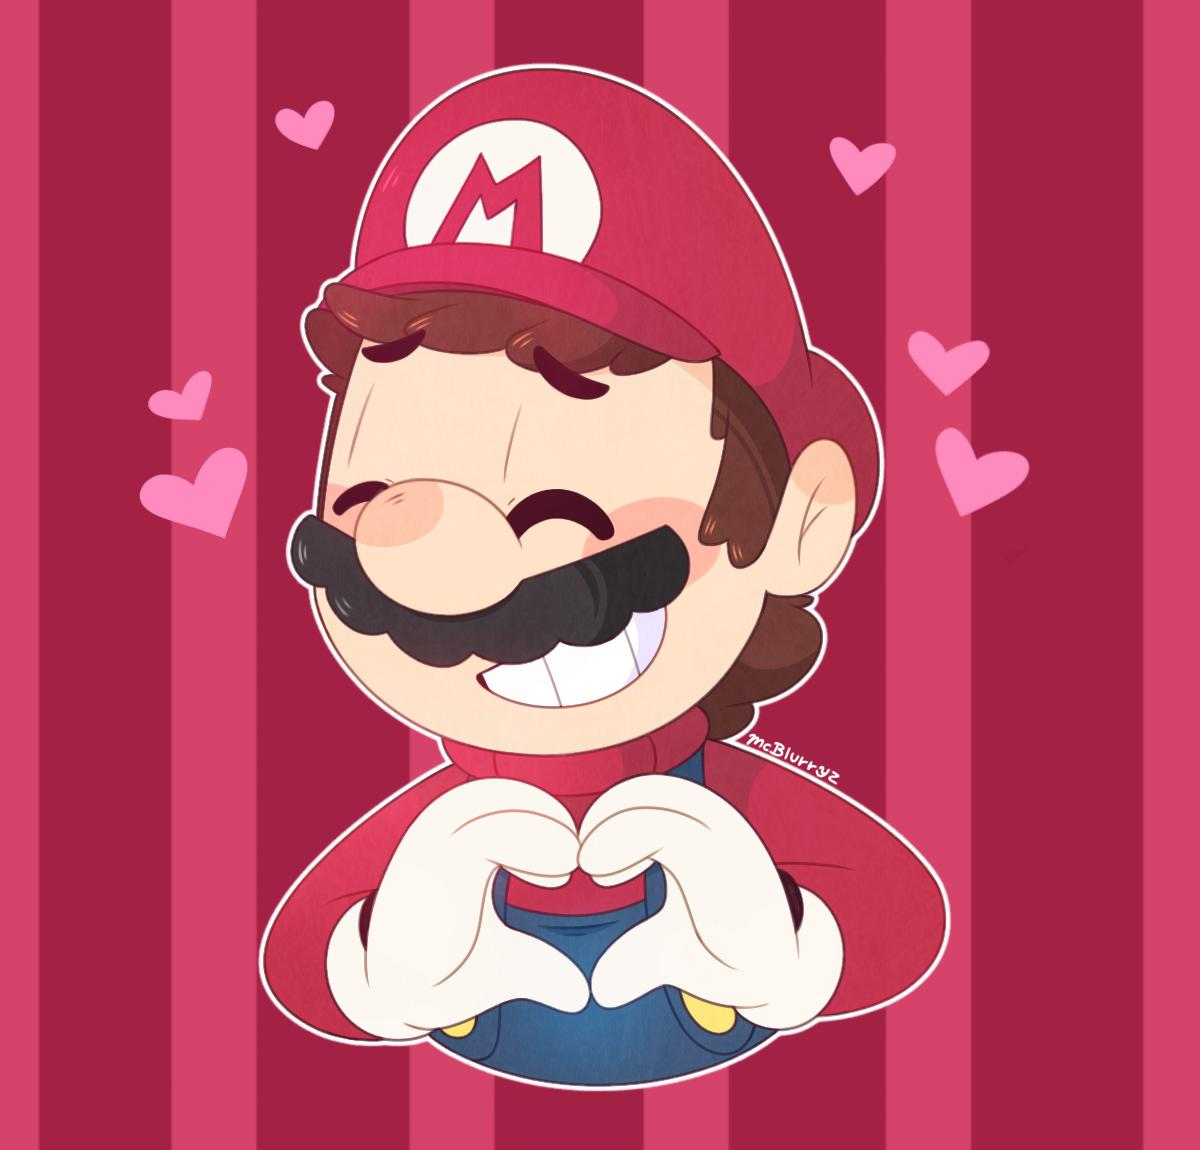 Have I ever mentioned how much I love... Mario?  <br>http://pic.twitter.com/PymMTuVGCV